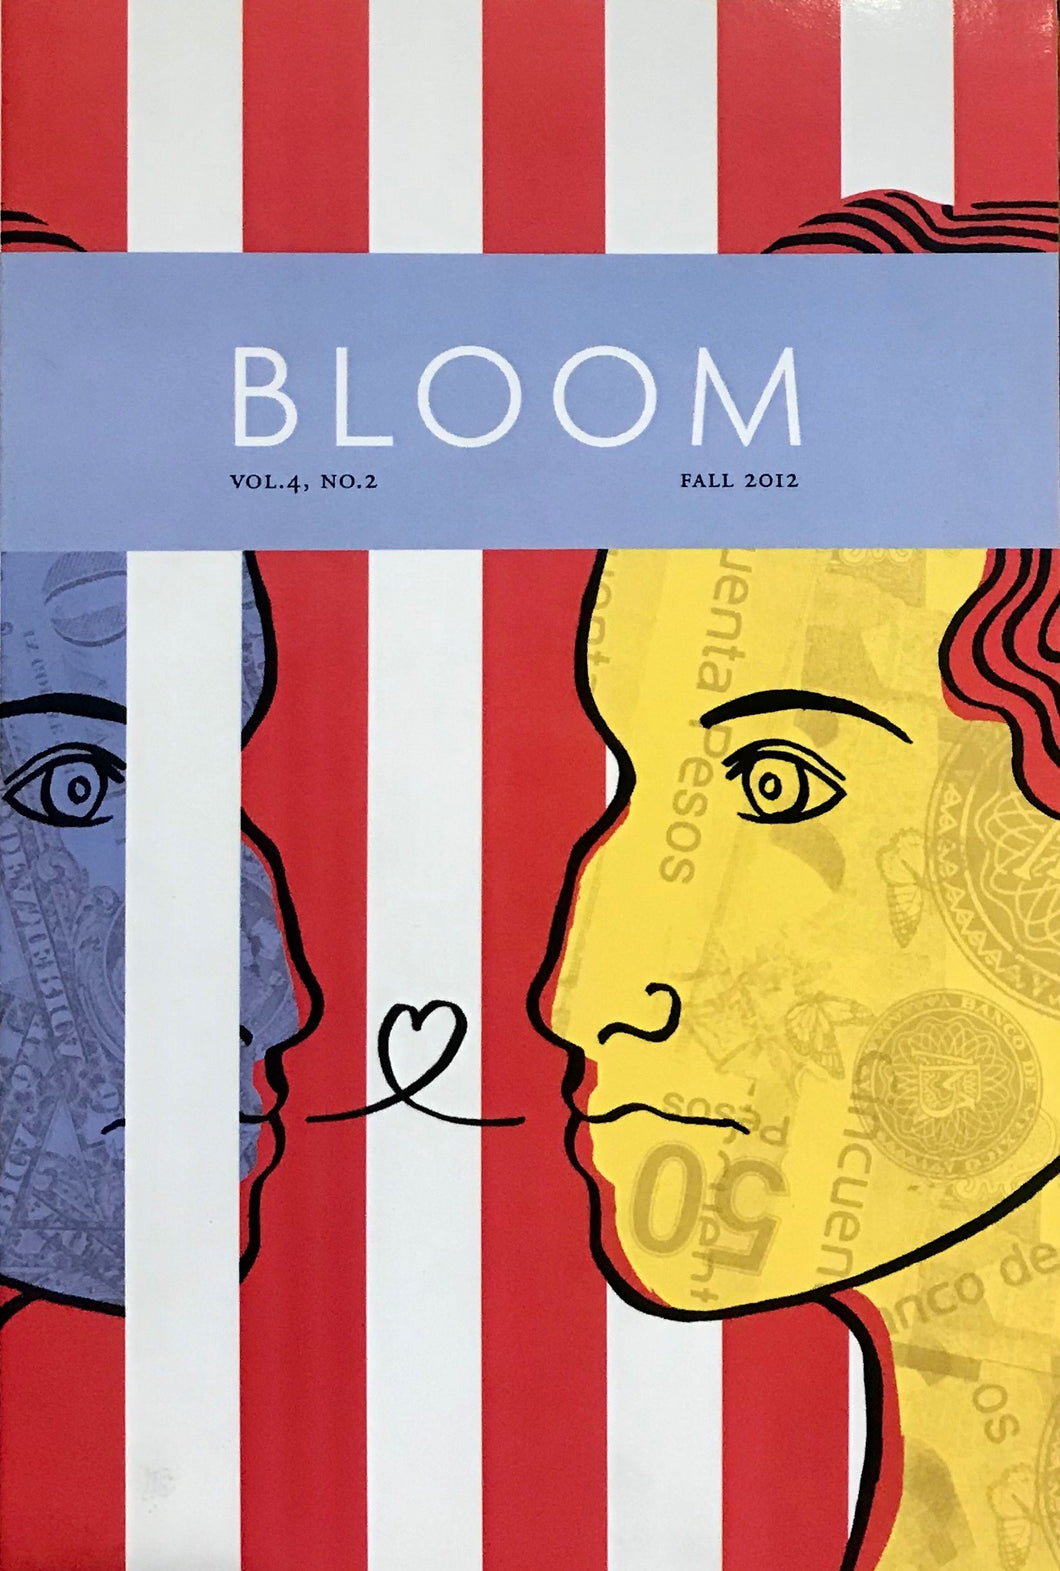 Bloom: Queer Fiction, Art, Poetry, and More (Vol. 4, No. 2)